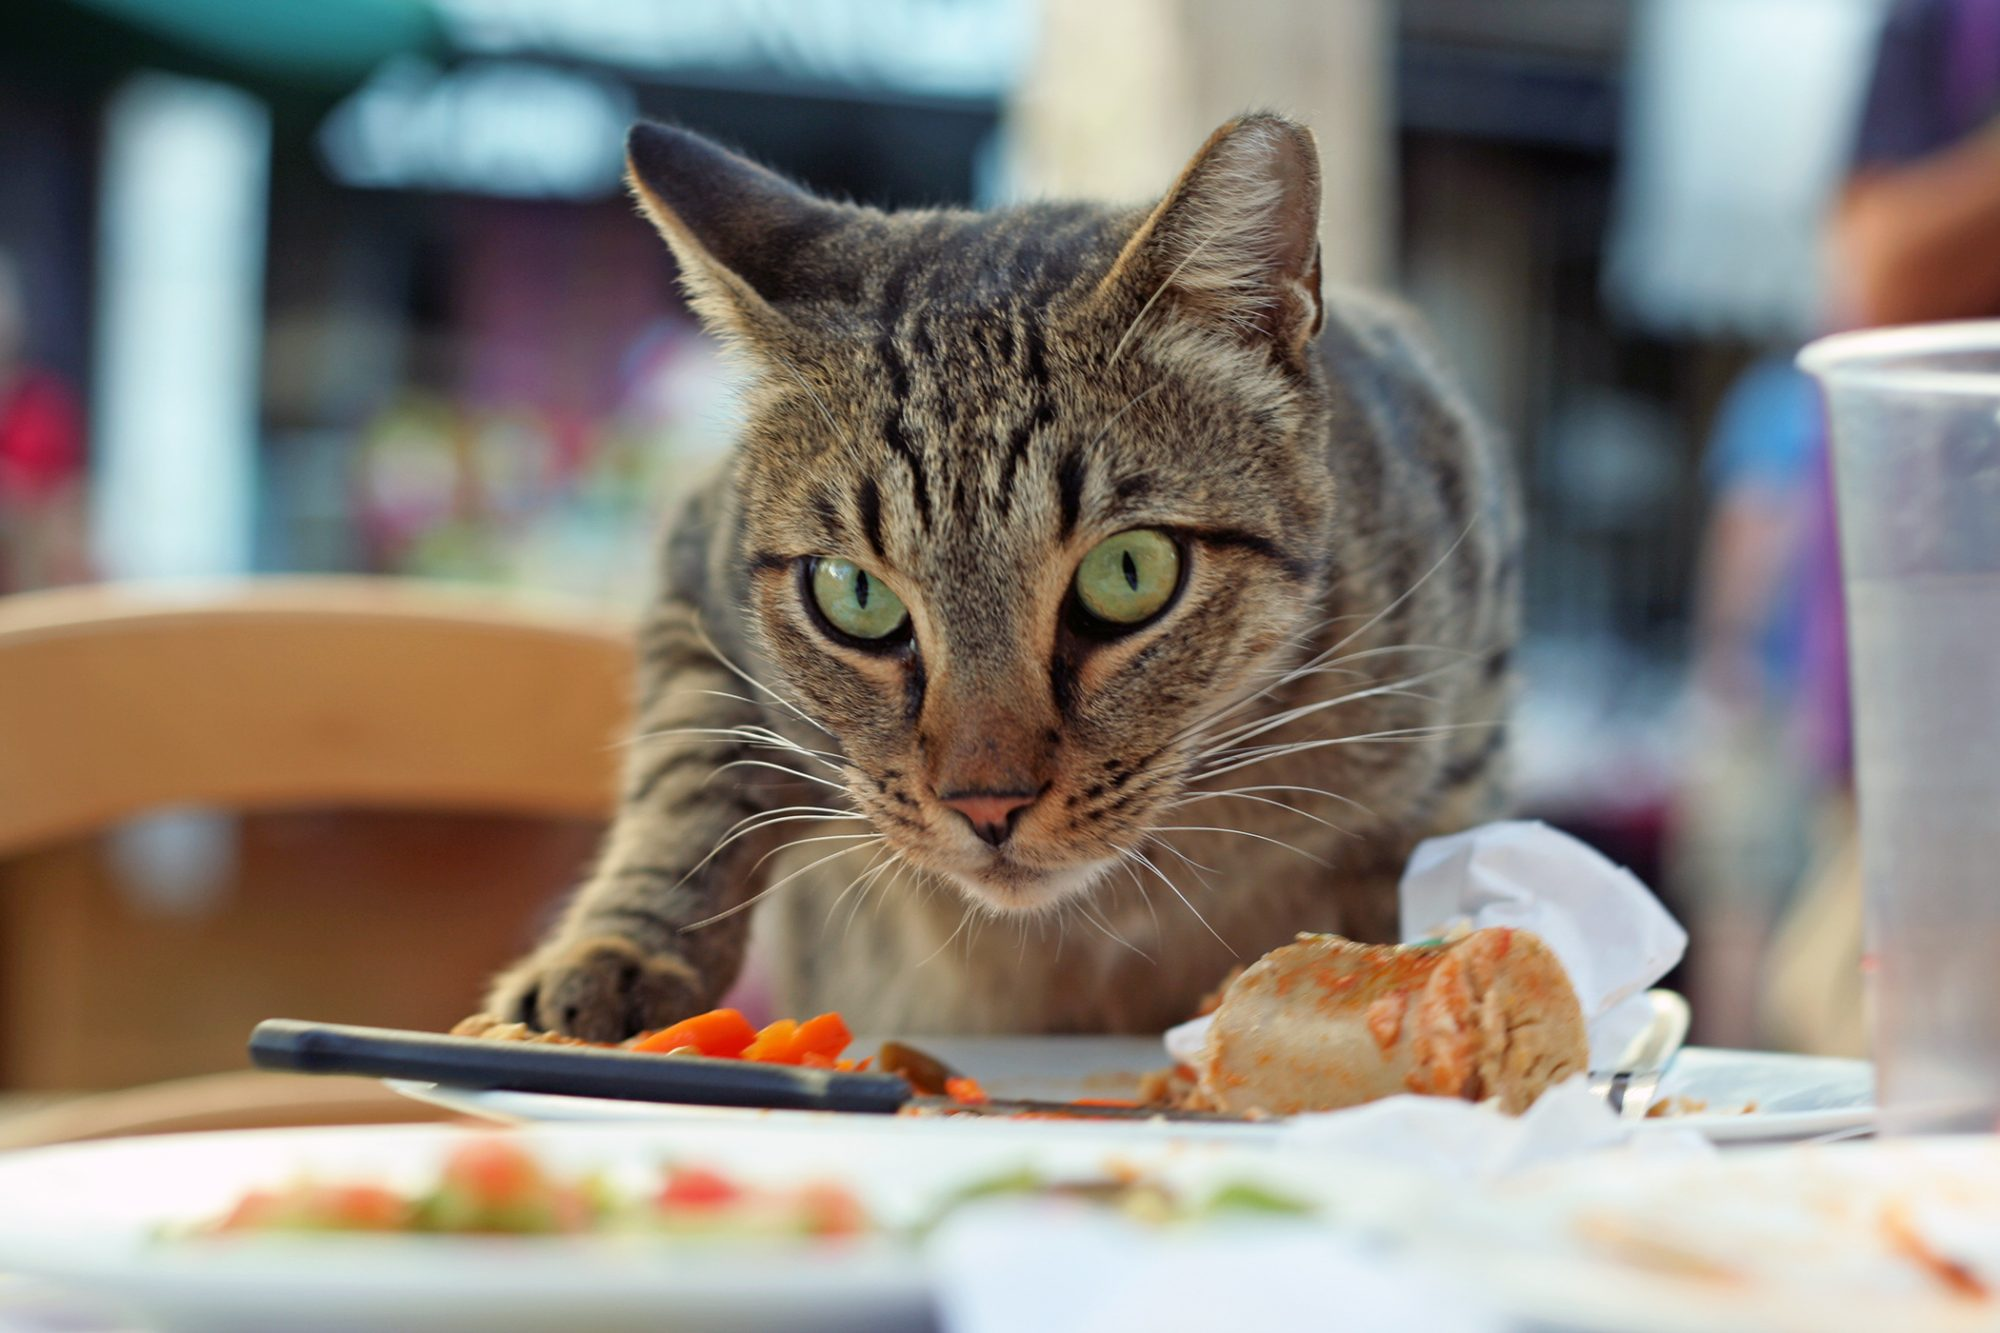 Striped cat eyes camera while creeping onto dinner table toward a plate of food